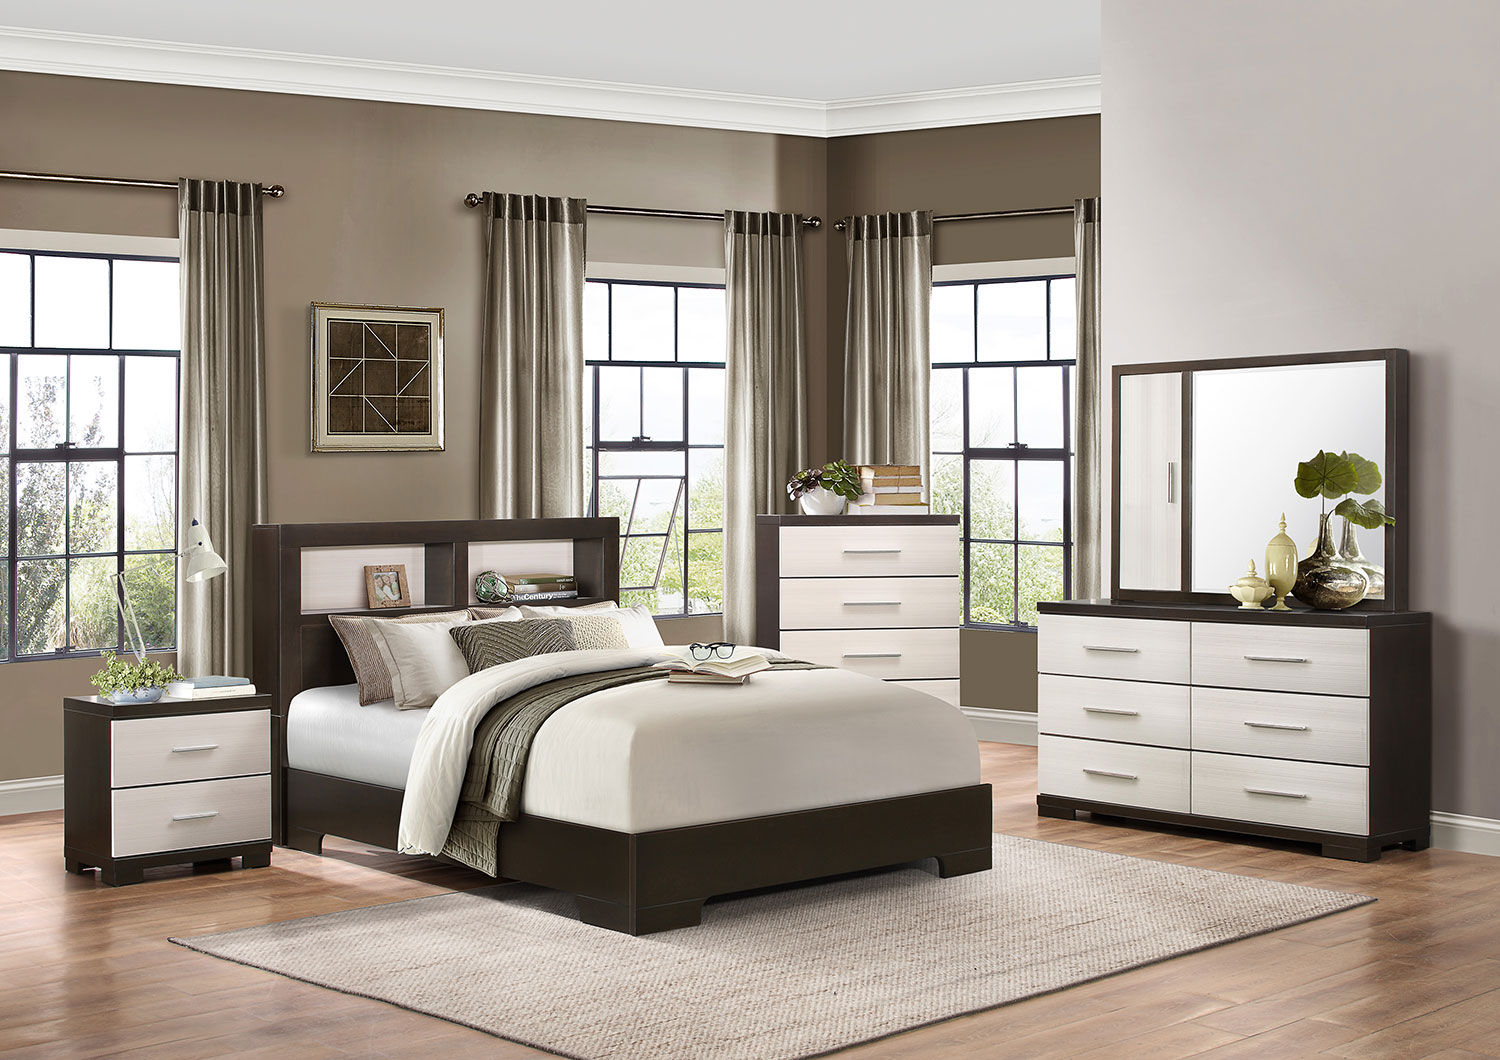 Bedroom Sets Espresso homelegance pell low profile storage bookcase bedroom set - two